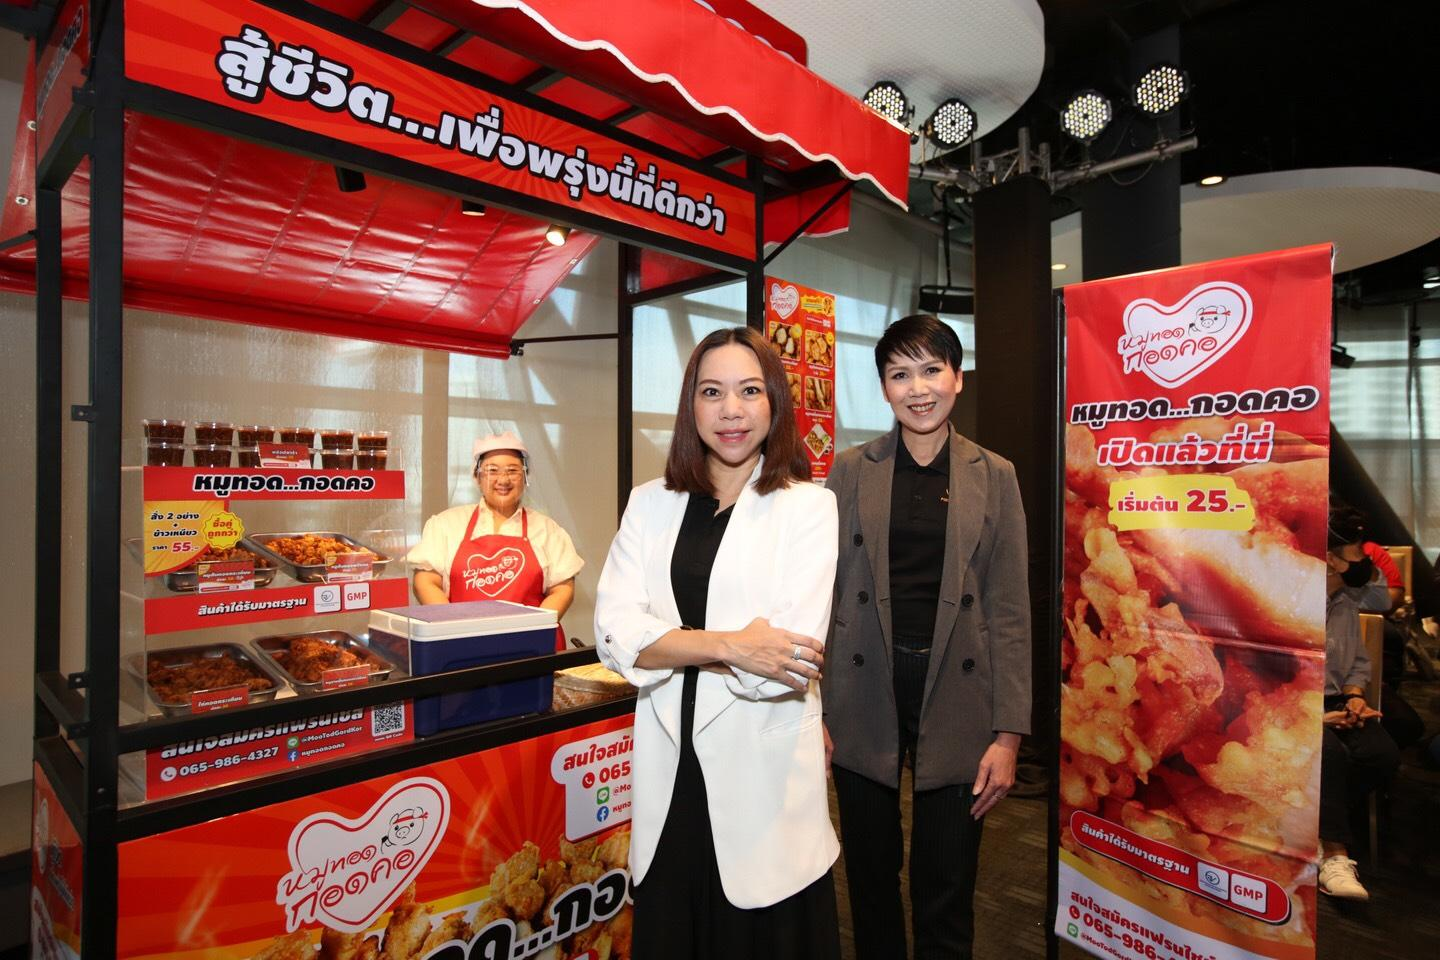 Ms Chataya (left) says Food Passion is introducing a new chain restaurant, Moo Tod Gord Kor.